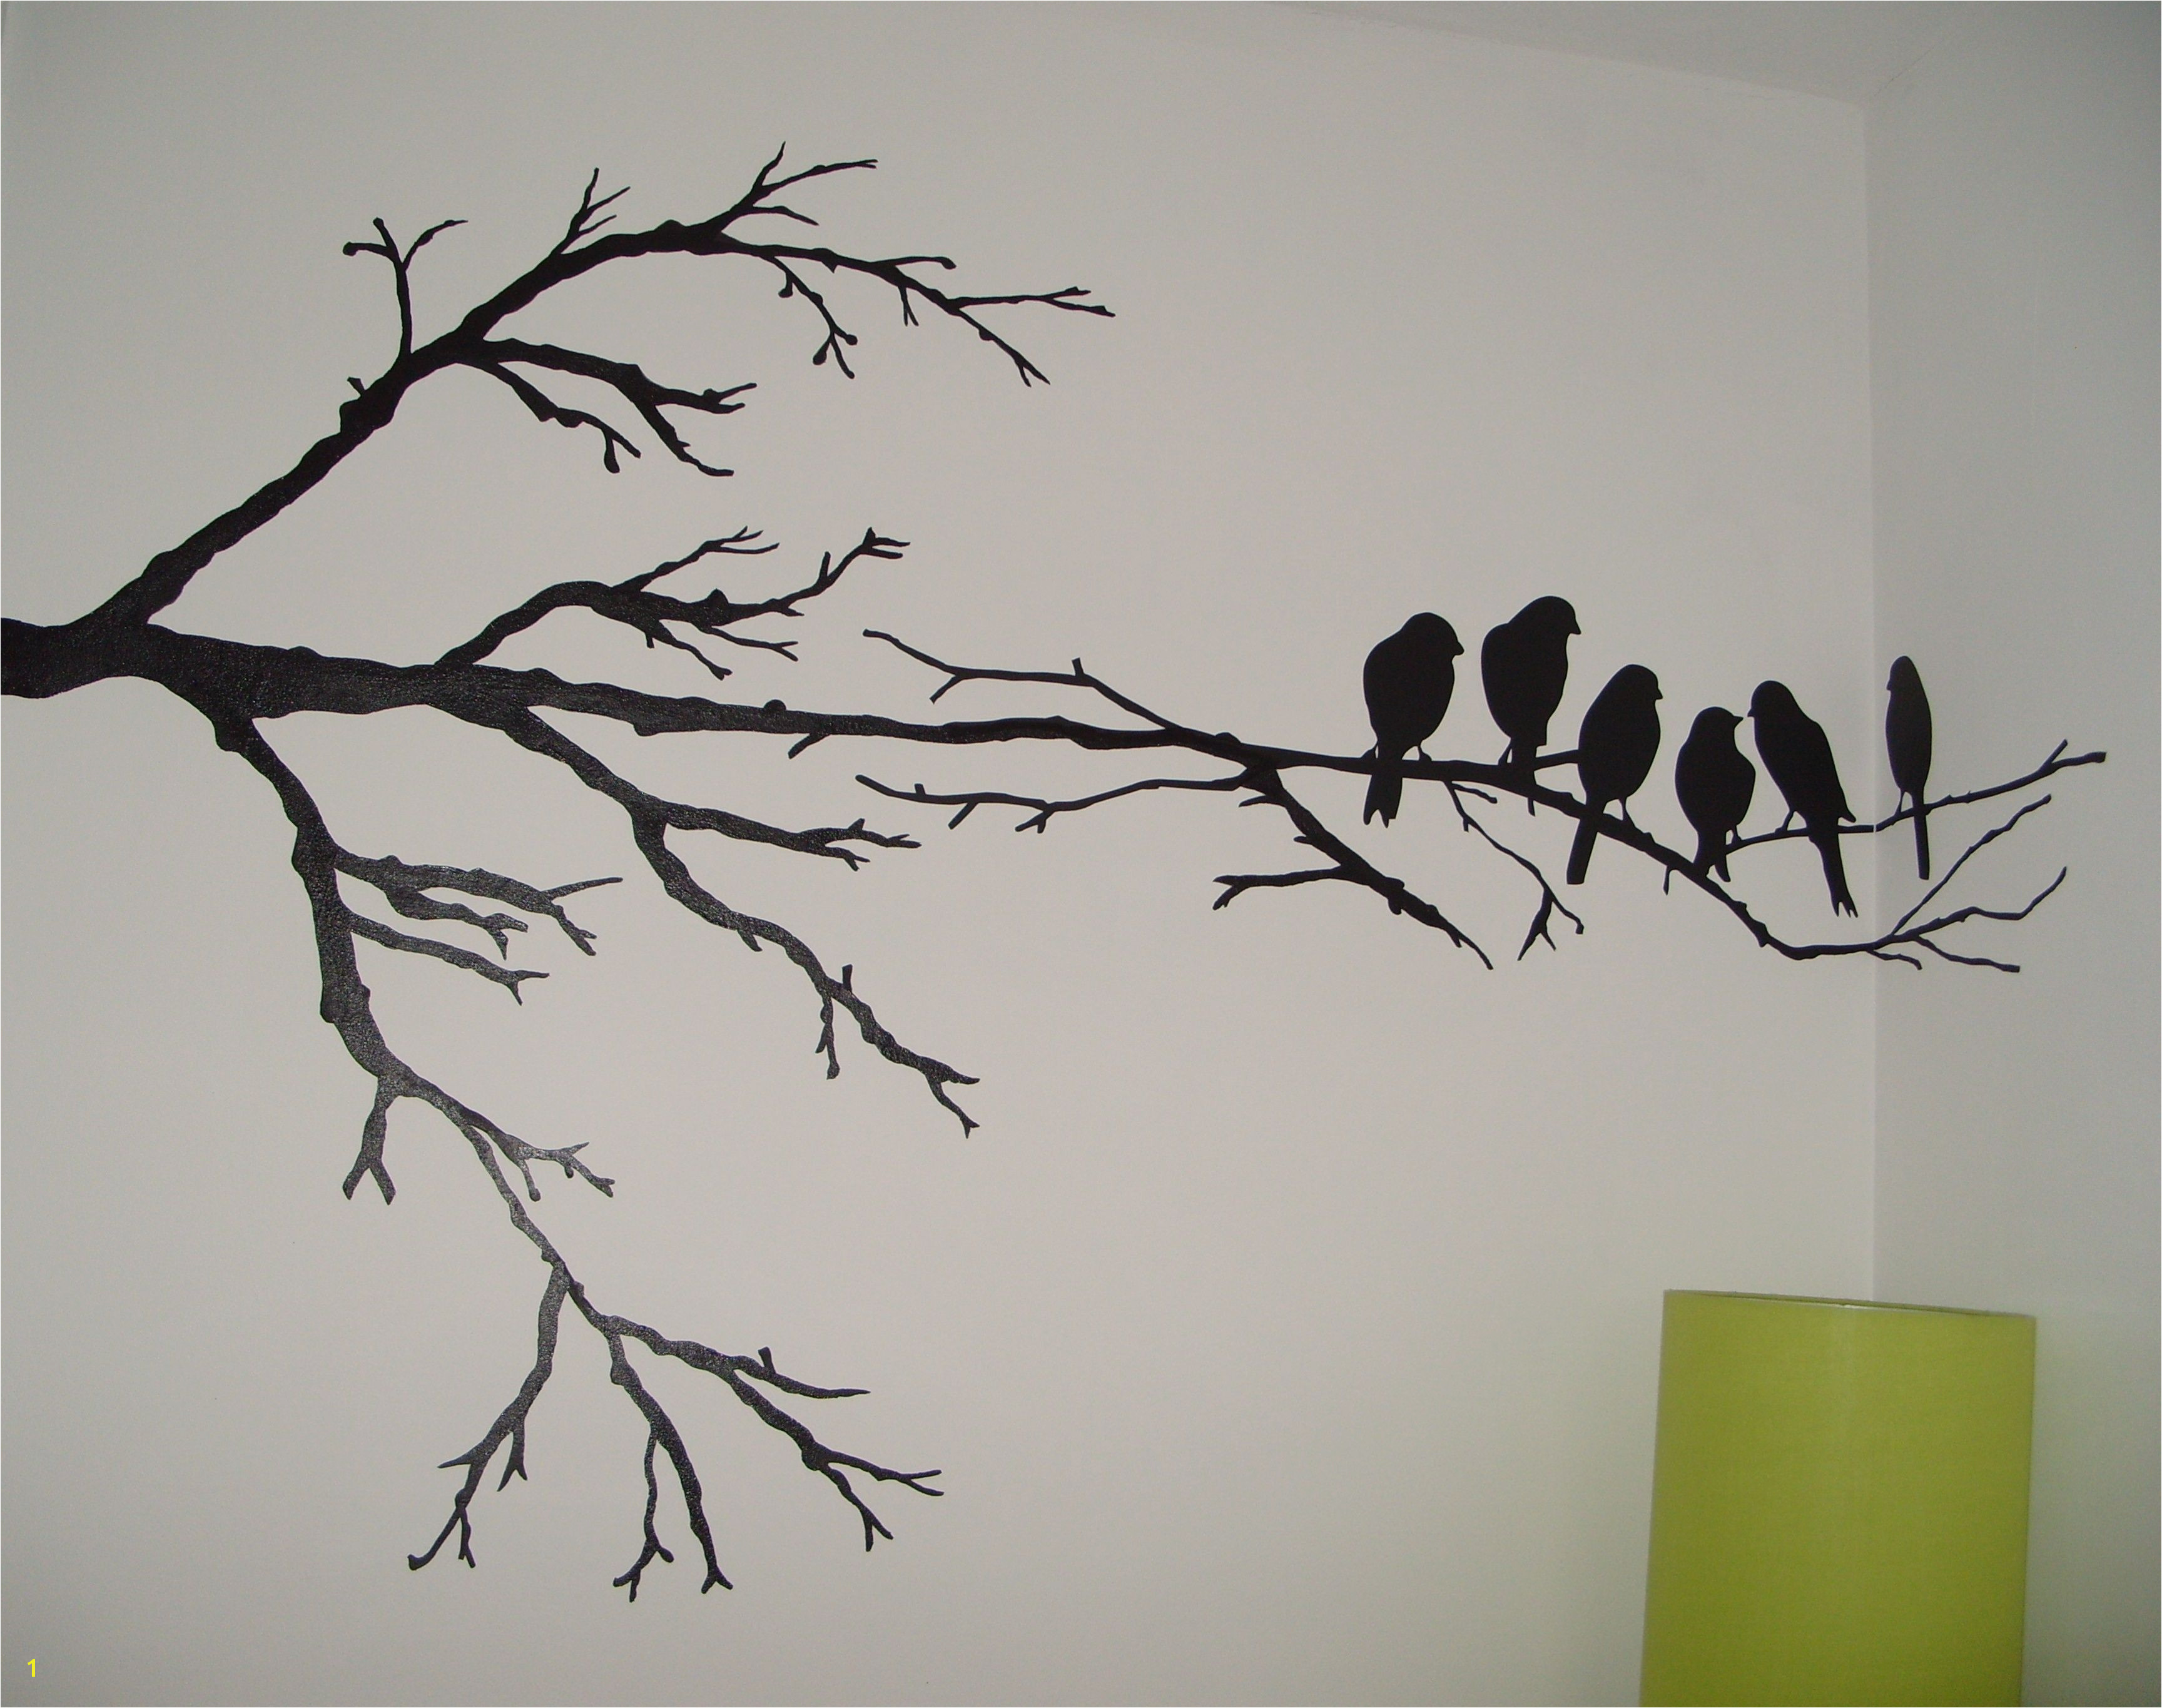 Wall painting Maybe just one branch and one of the birds an accent color